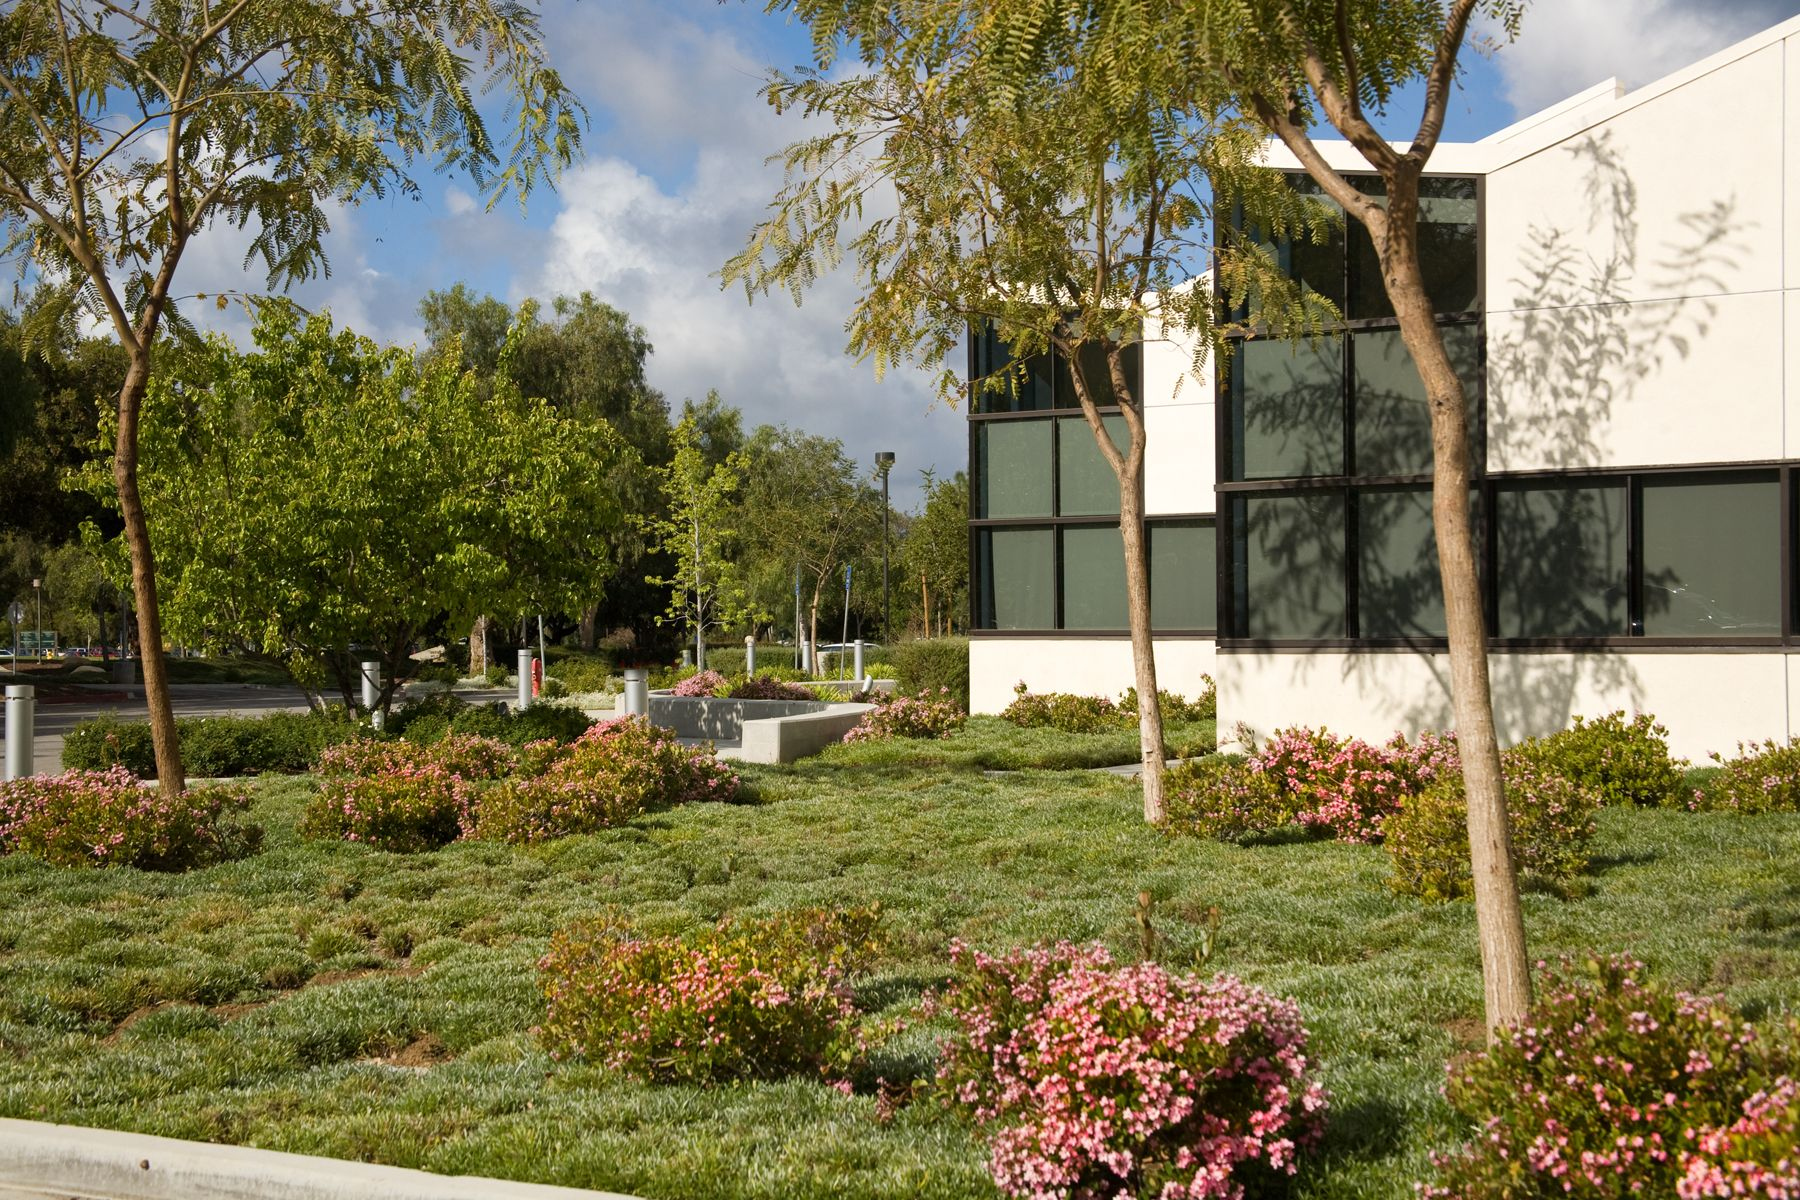 Grant R Brimhall Library In Thousand Oaks Ca Exterior 4